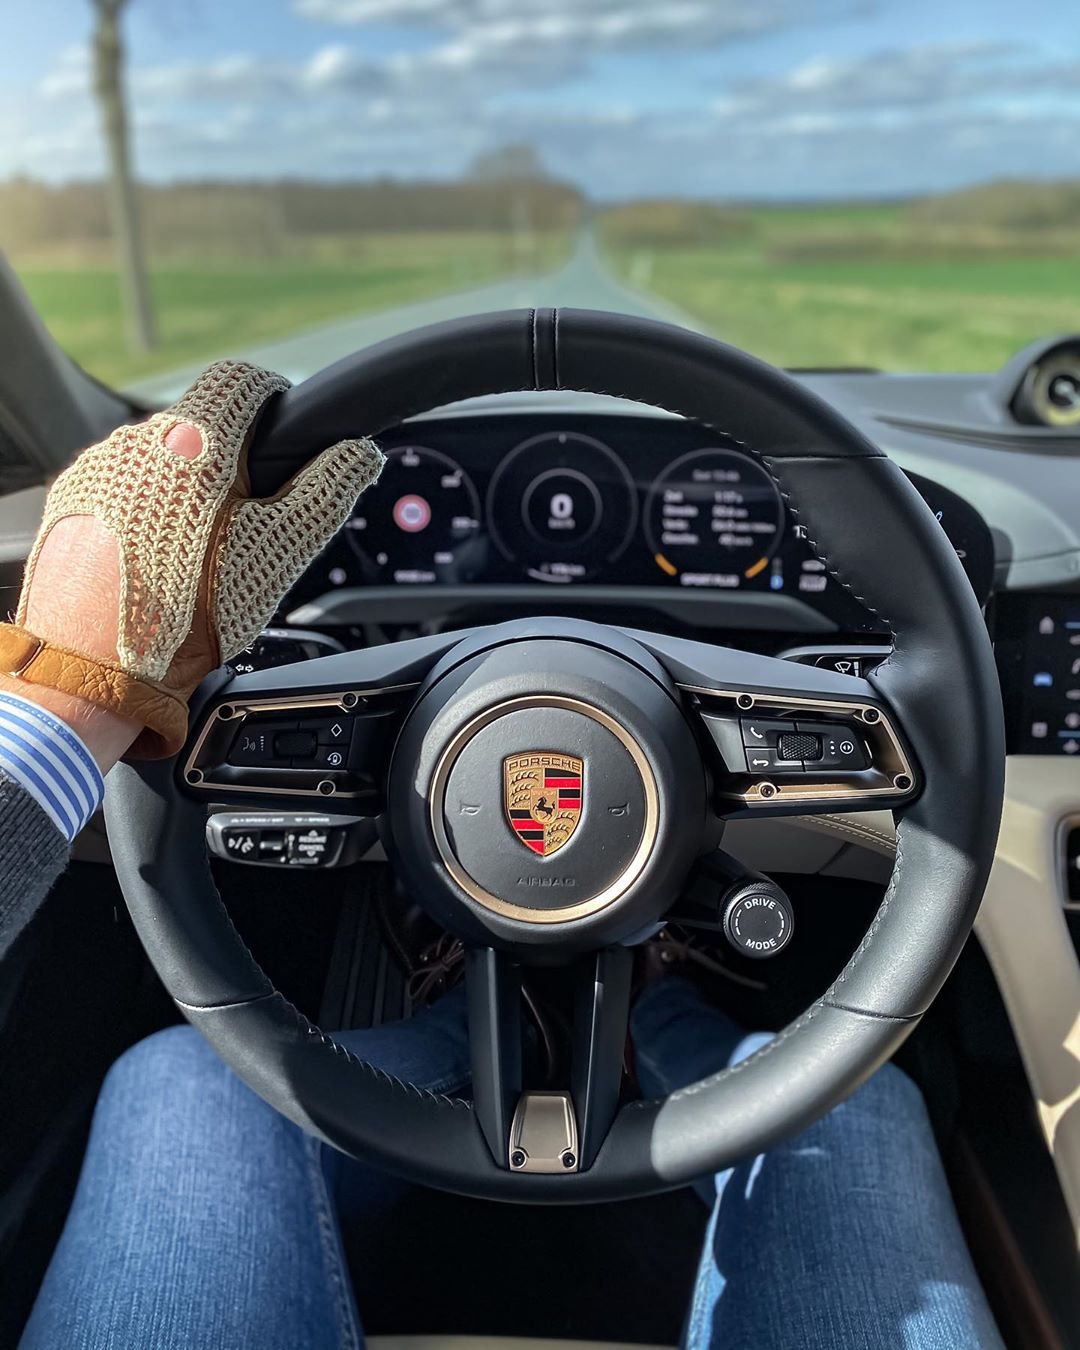 Yaasss😎☀️…weather has been a lot better today🙌…watch our first Taycan Turbo S stories & follow our Roadtrip north with charging the car🧐🙈 @porsche_newsroom @porsche #porsche #porschetaycan #porschetaycanturbo #porschetaycanturbos #taycan #taycanturbo #taycsnturbos #turbos #ev #eletriccar #electriccar #automanntv